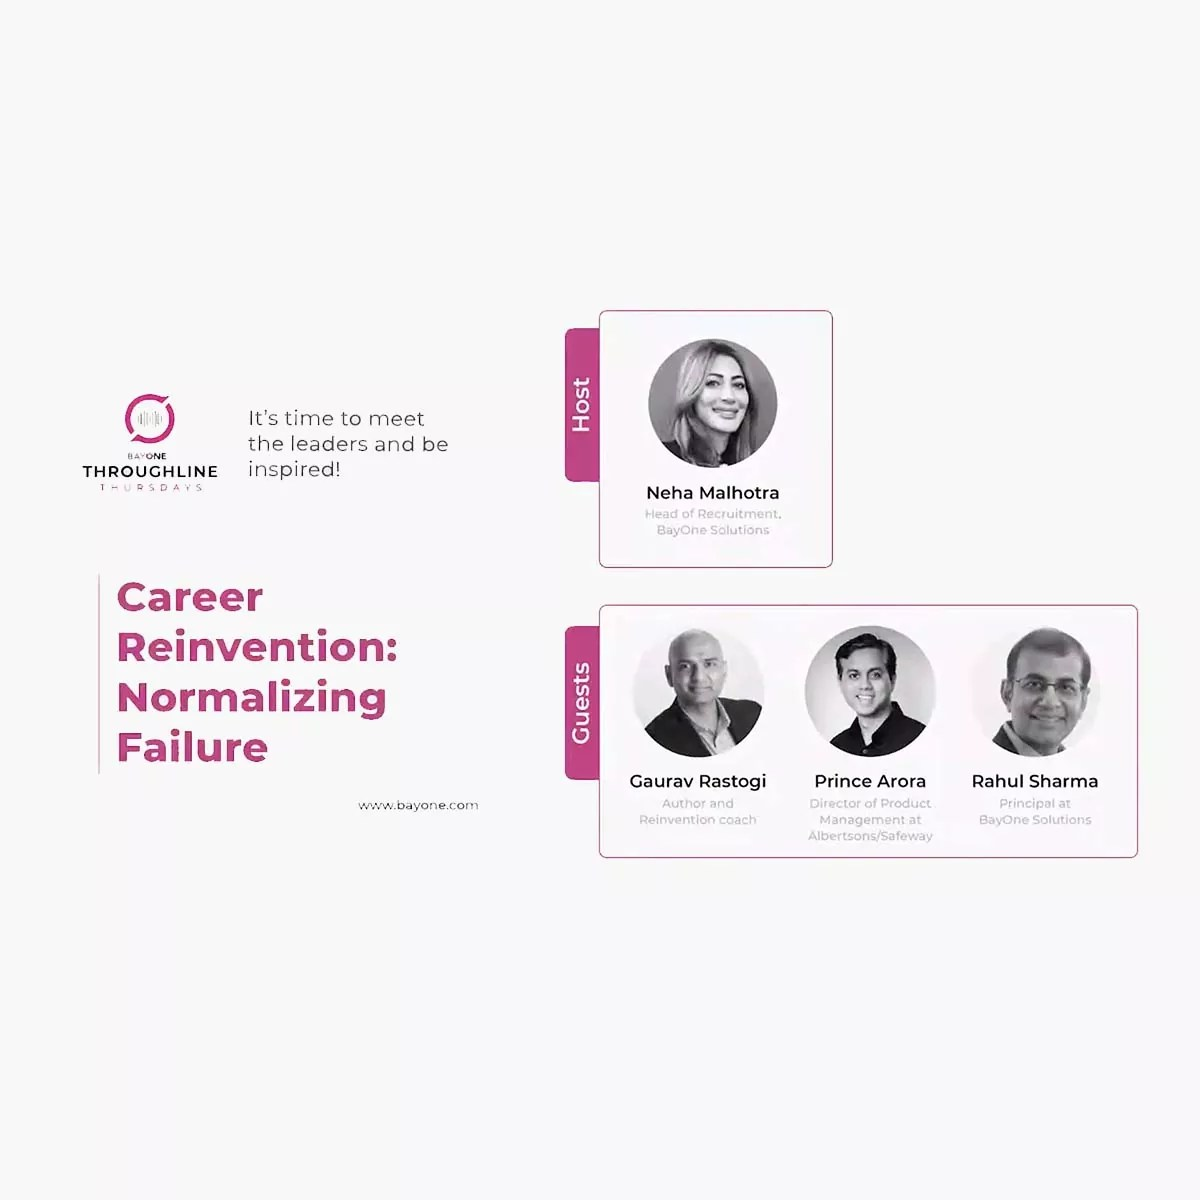 Career Reinvention: Normalizing Failure